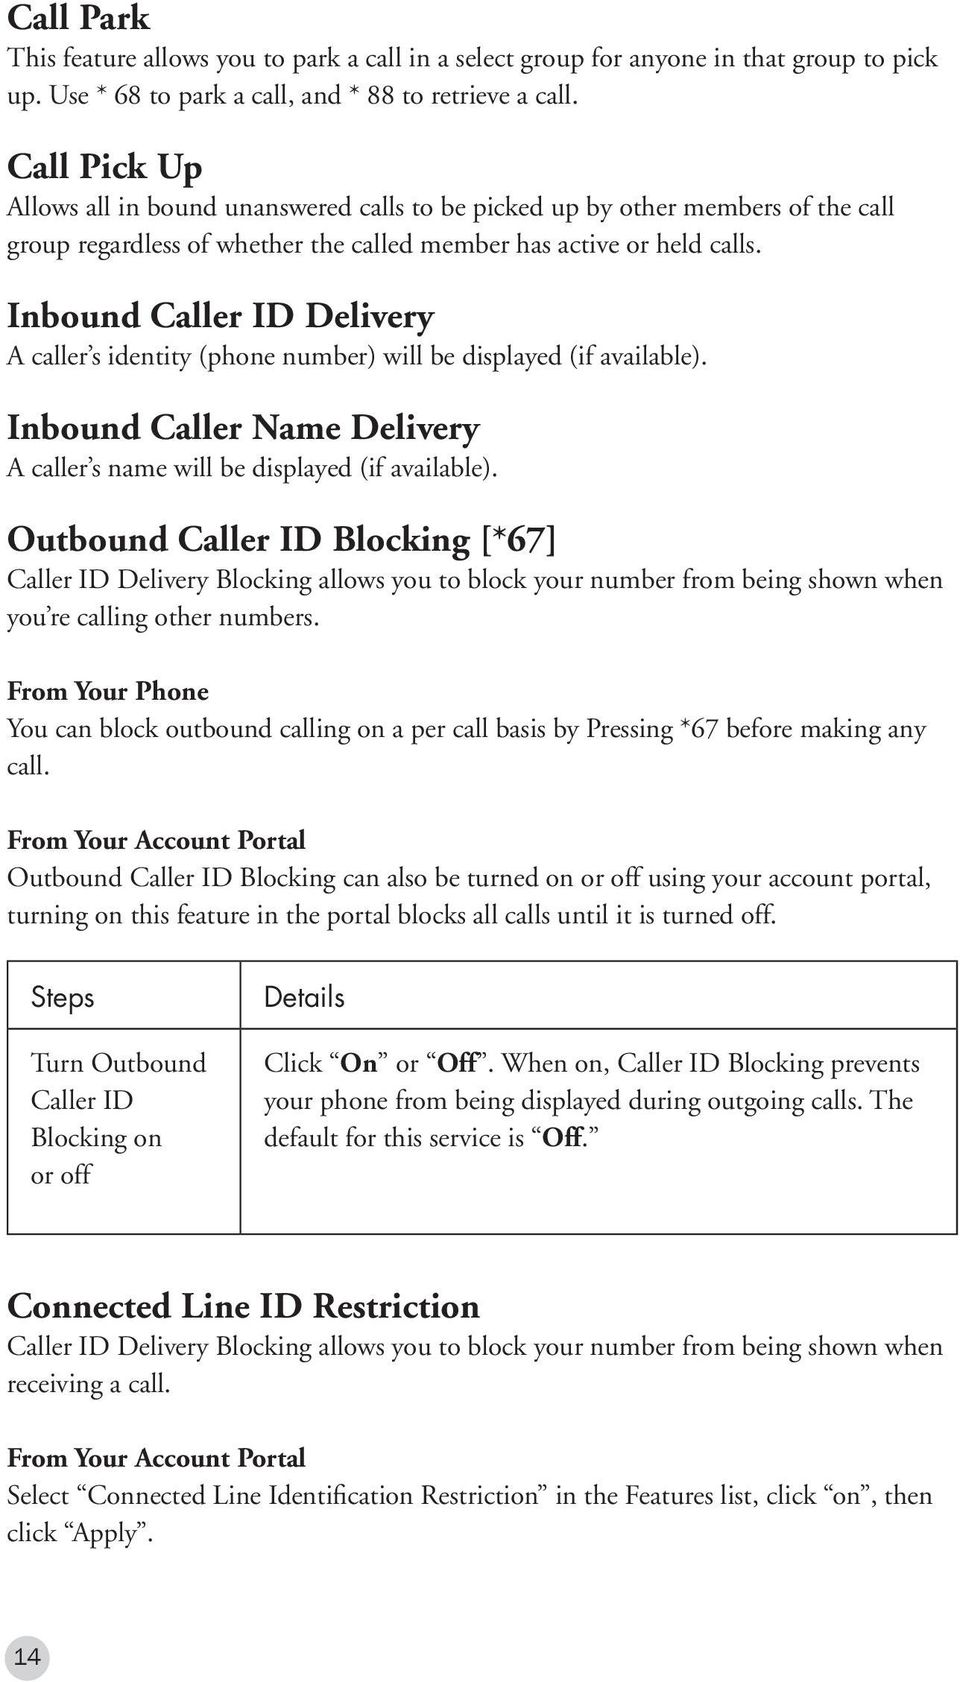 Inbound Caller ID Delivery A caller s identity (phone number) will be displayed (if available). Inbound Caller Name Delivery A caller s name will be displayed (if available).